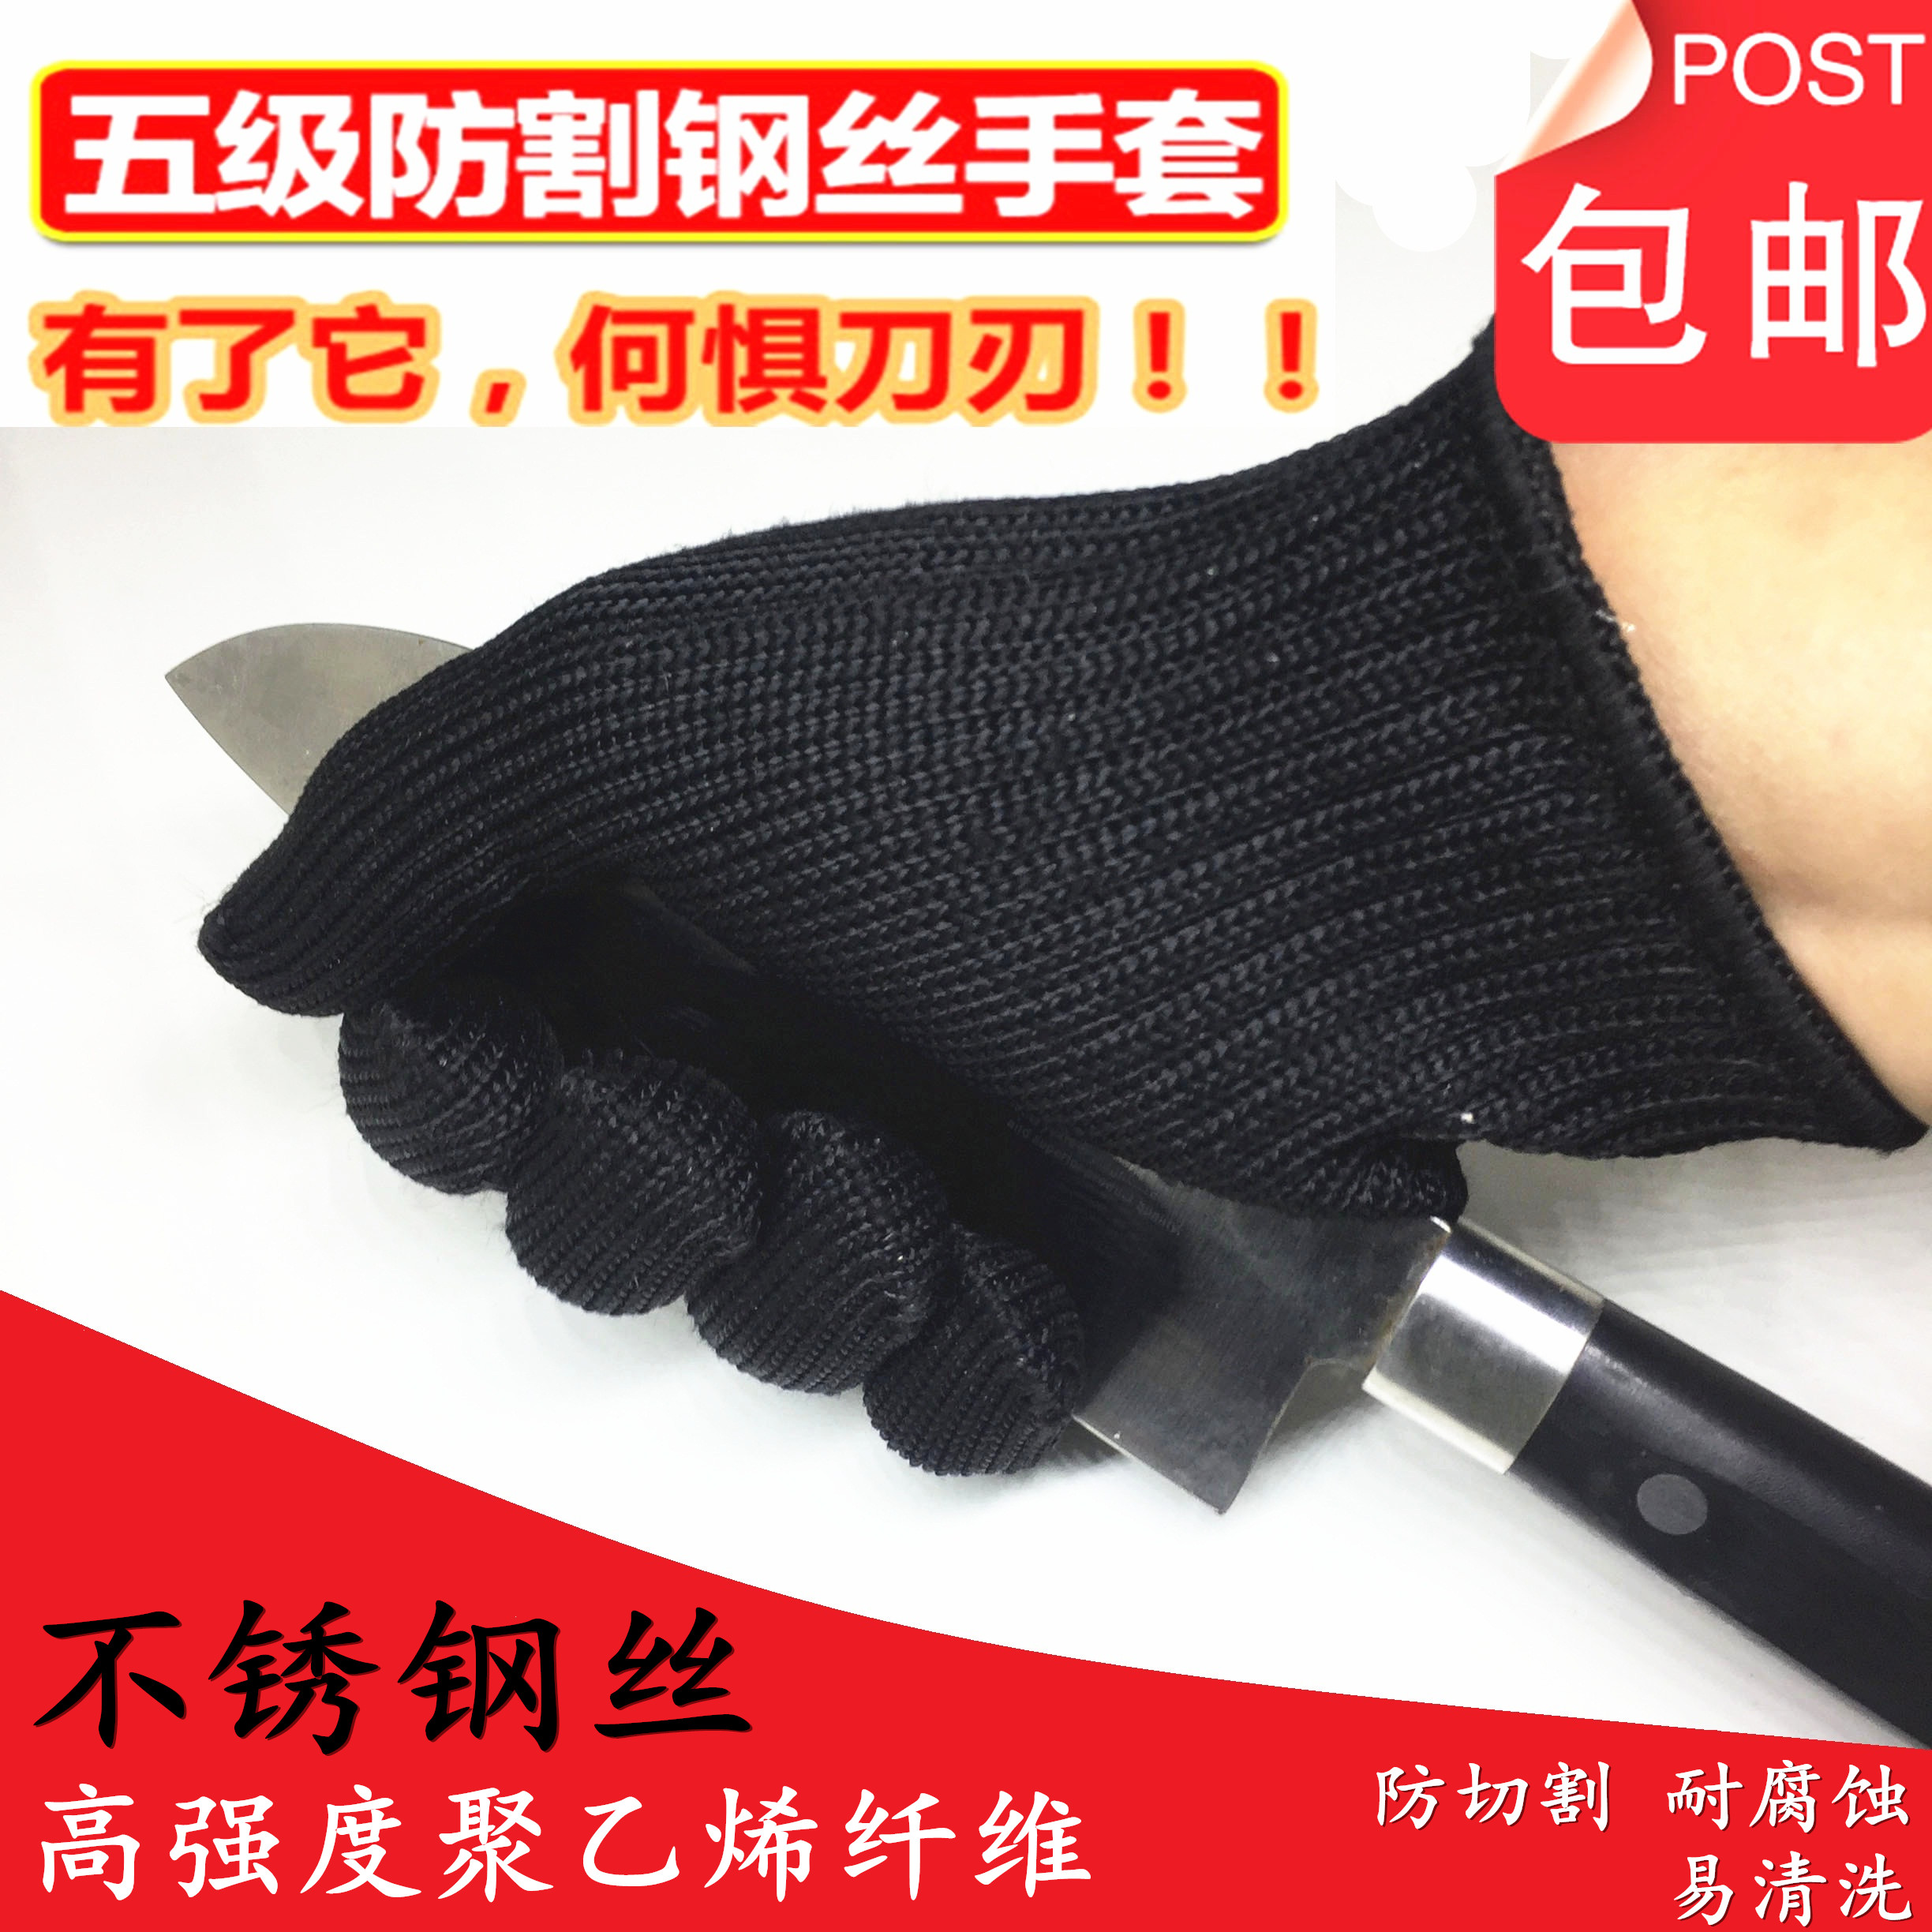 Non Disposable 5 Class Anti Cutting Outdoor Climbing Tactics Wire-steel Gloves Labor Protection Supplies Workplace Safety Supplies Safety Gloves